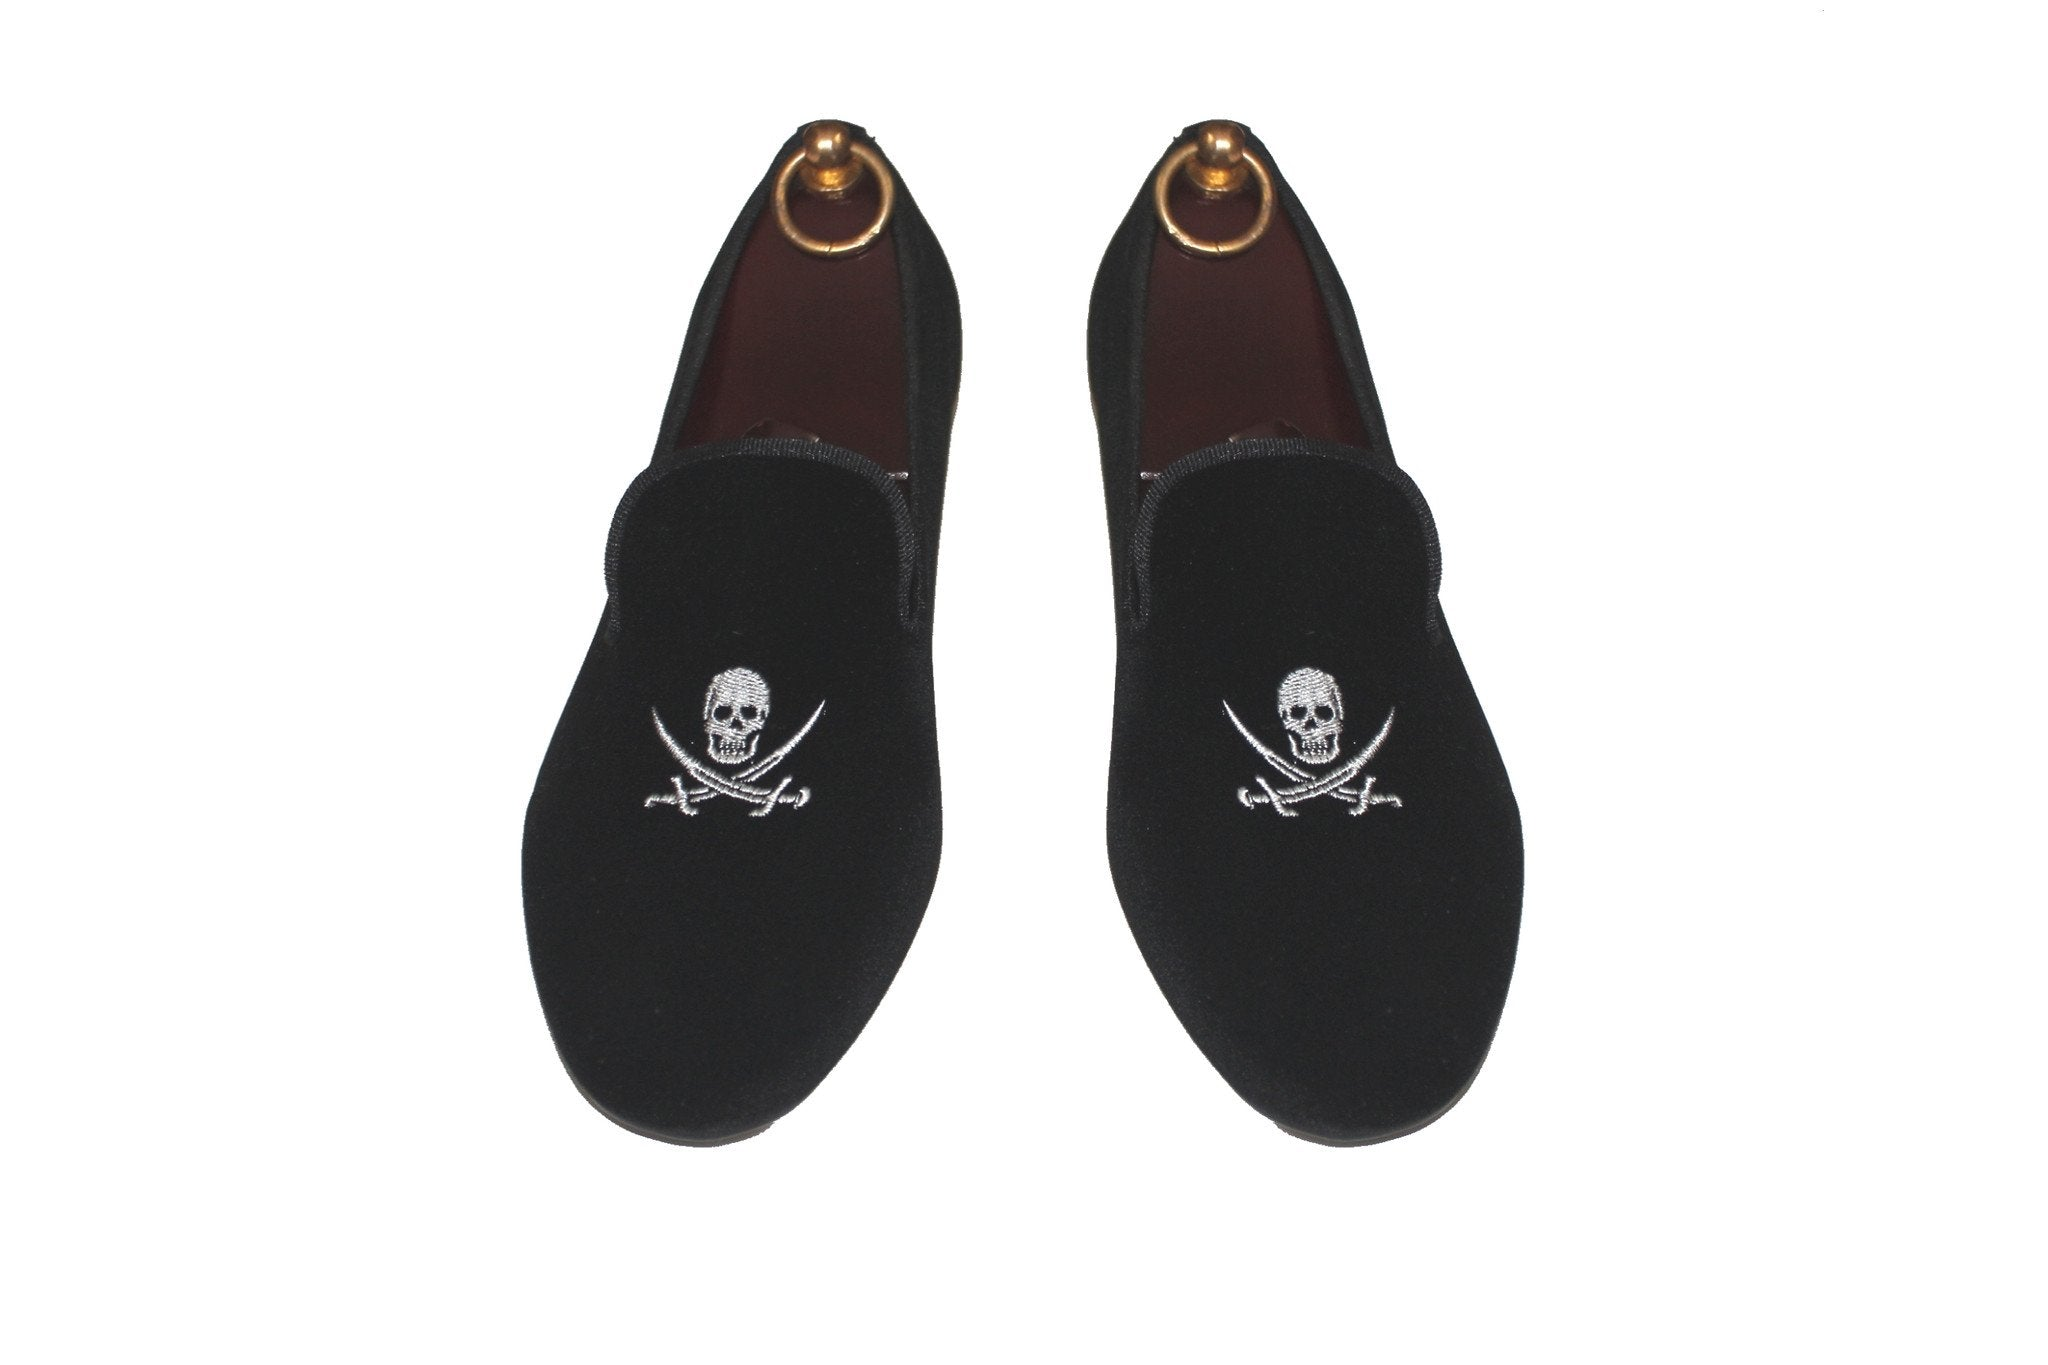 Black Velvet Loafers Skull and Swords Pirate Motif.